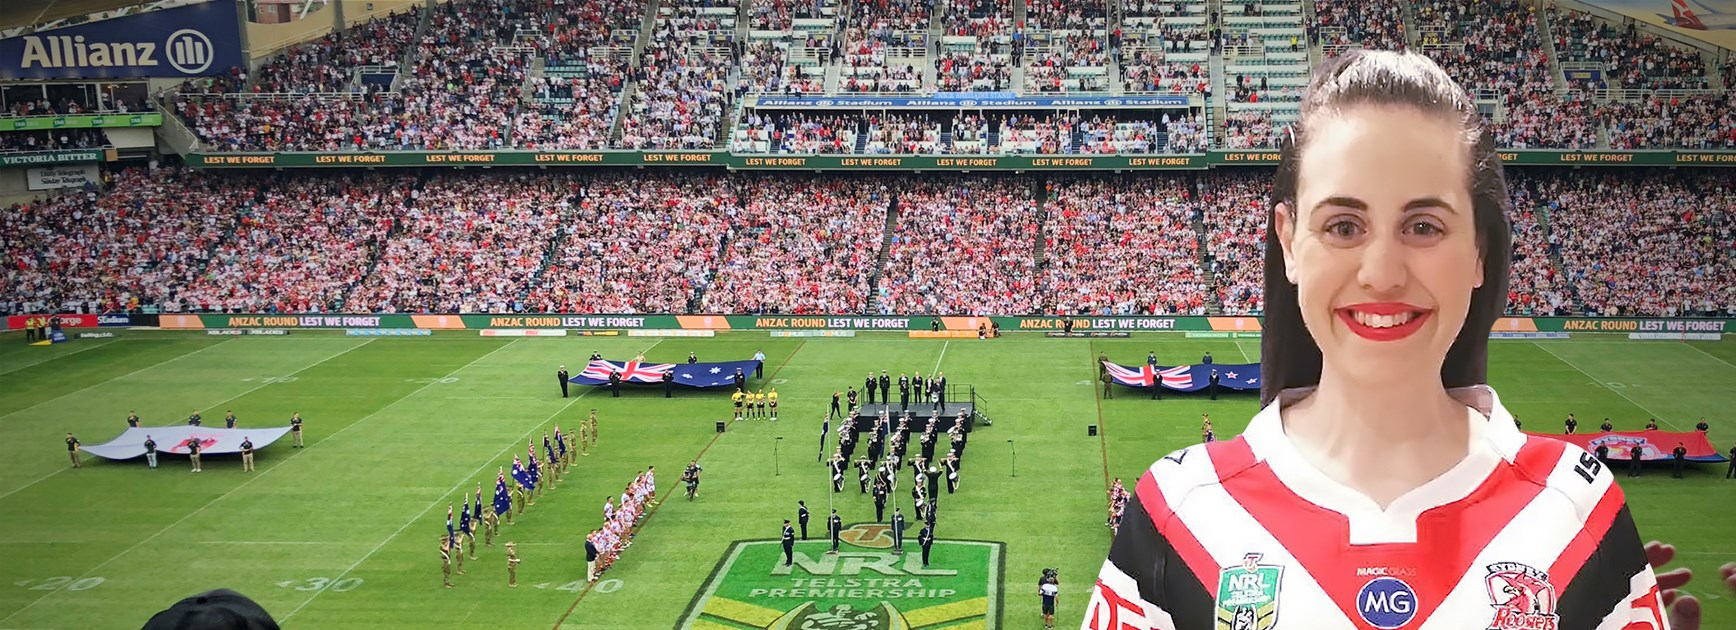 Anzac Day game like nothing else in rugby league